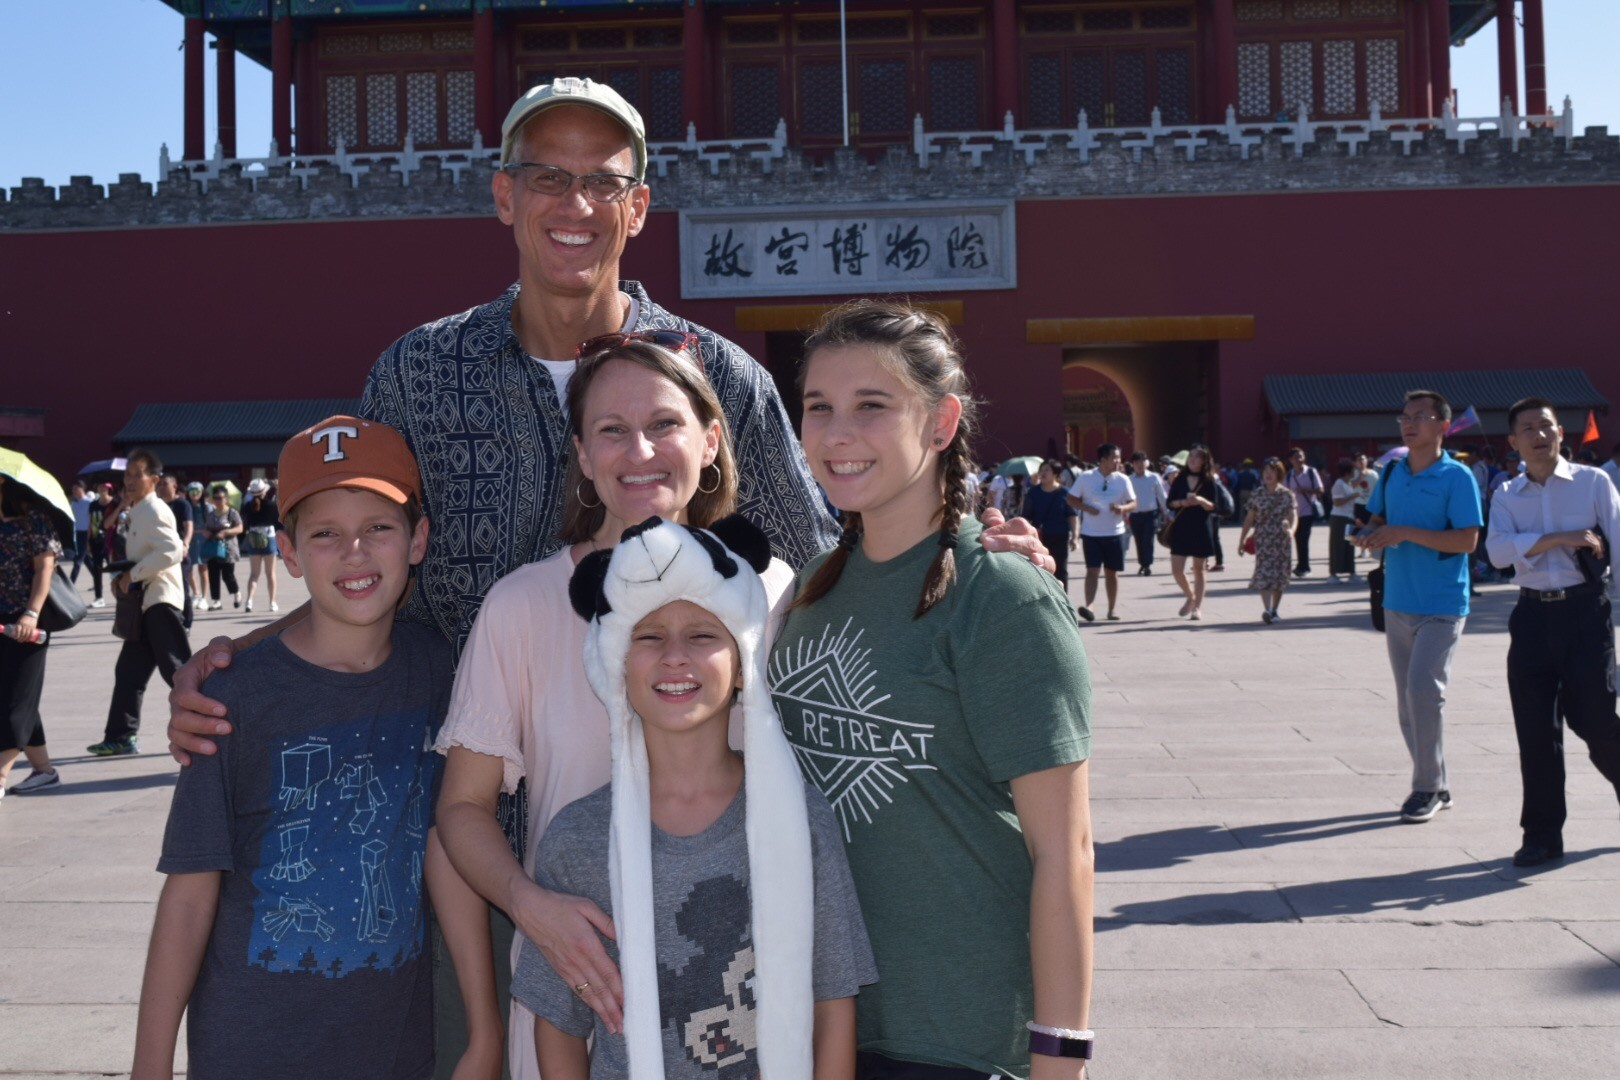 Inside the Forbidden City, the Chinese imperial palace for nearly 500 years.